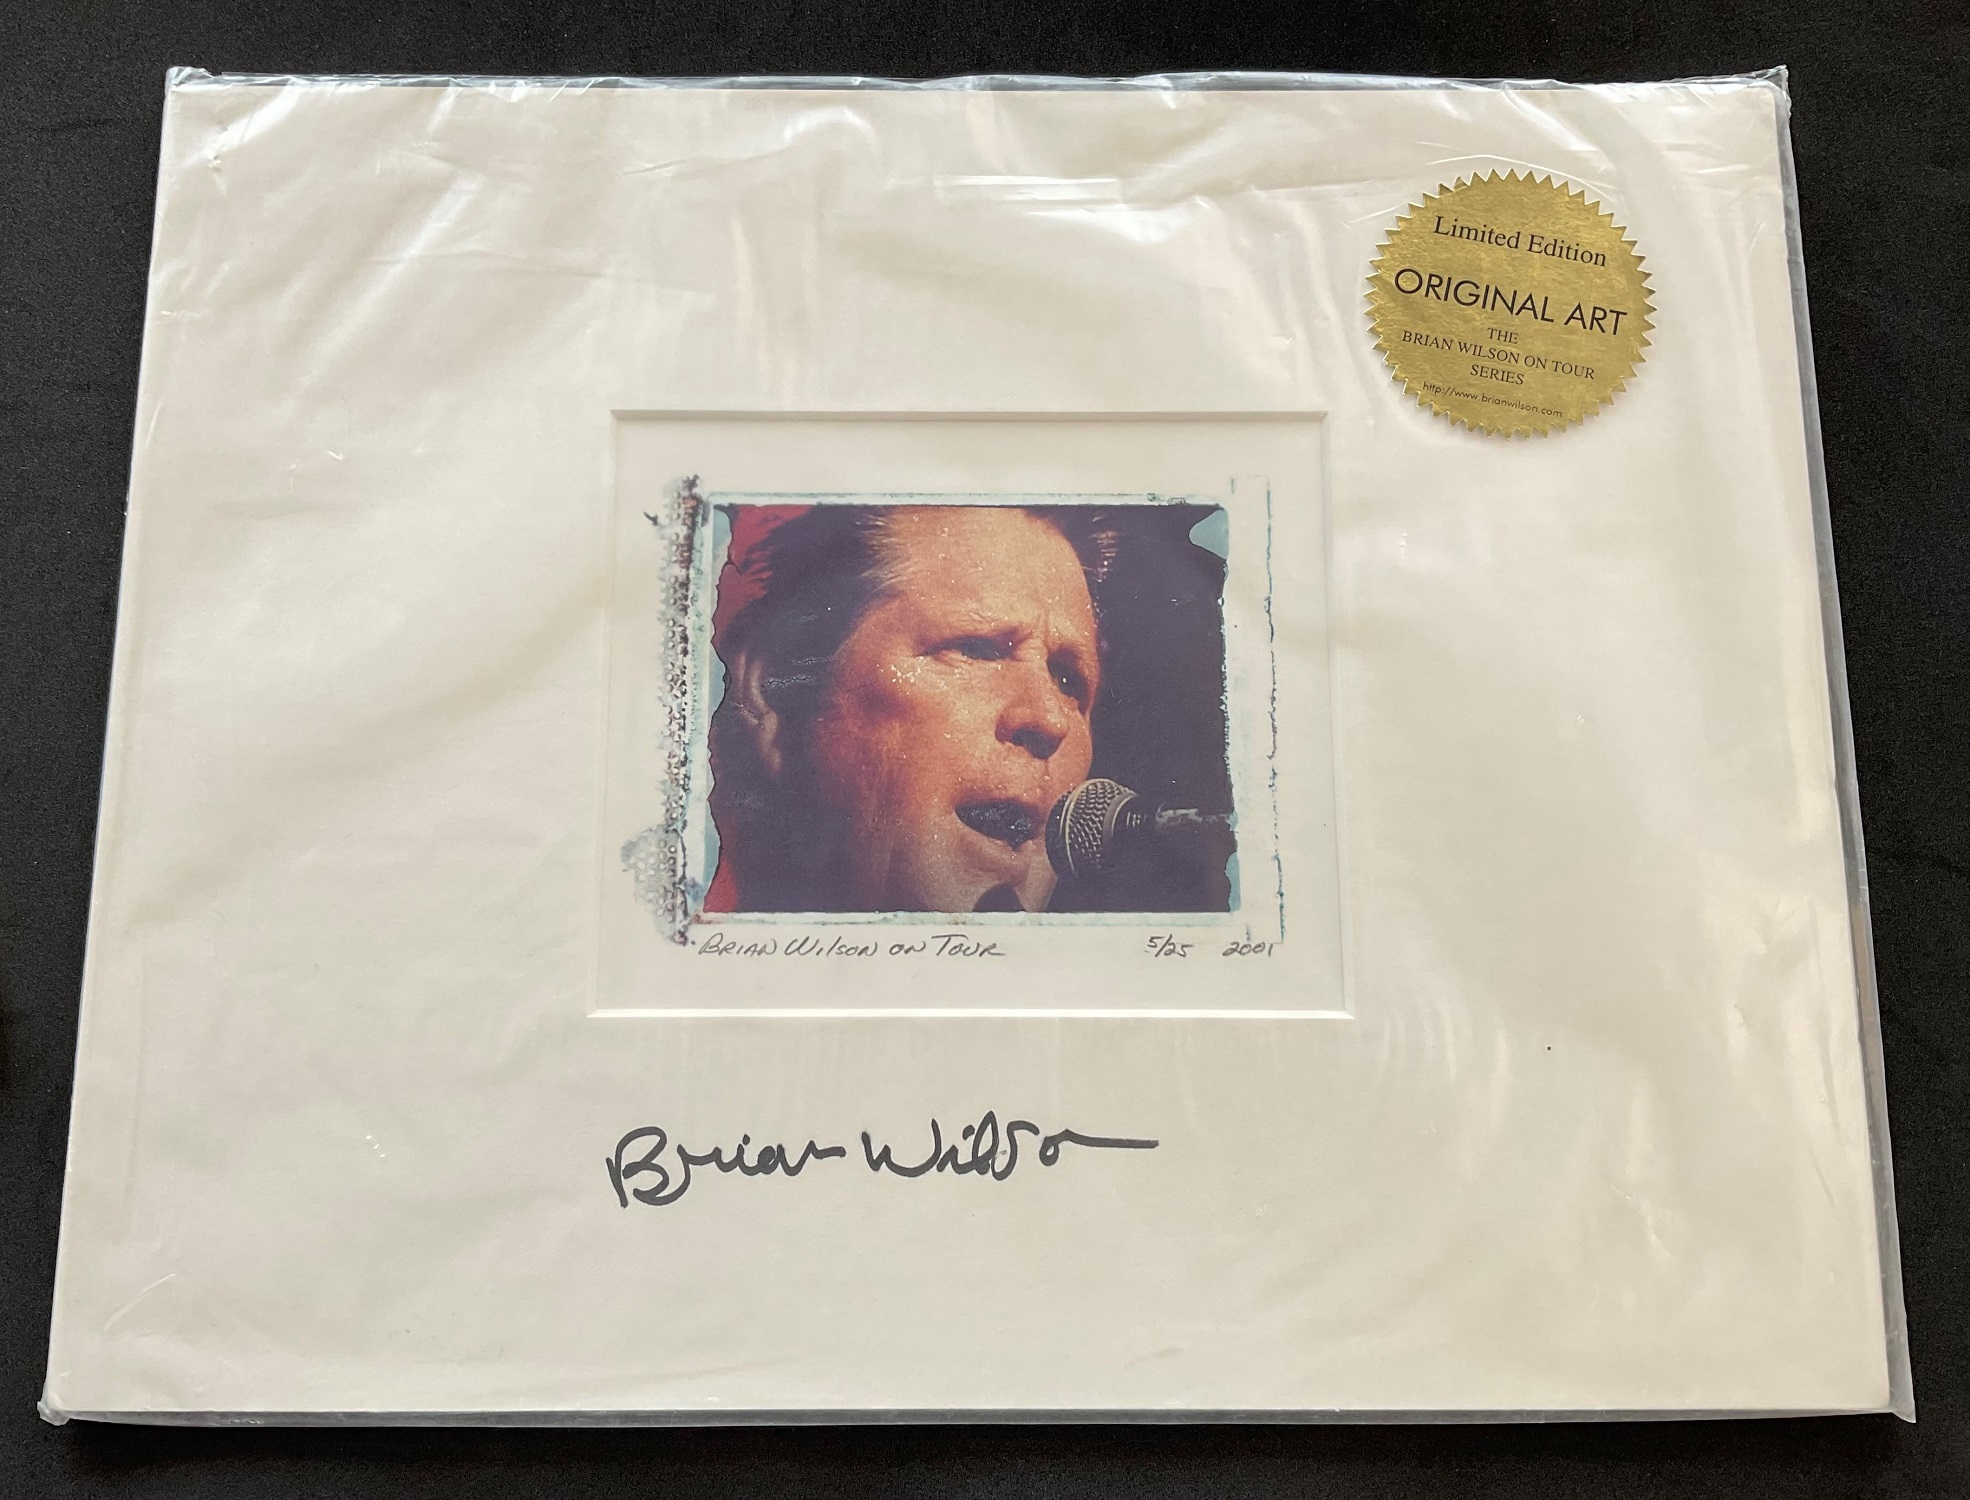 Singer and Musician Brian Wilson signed limited edition Original Art from 001 Brian Wilson on Tour